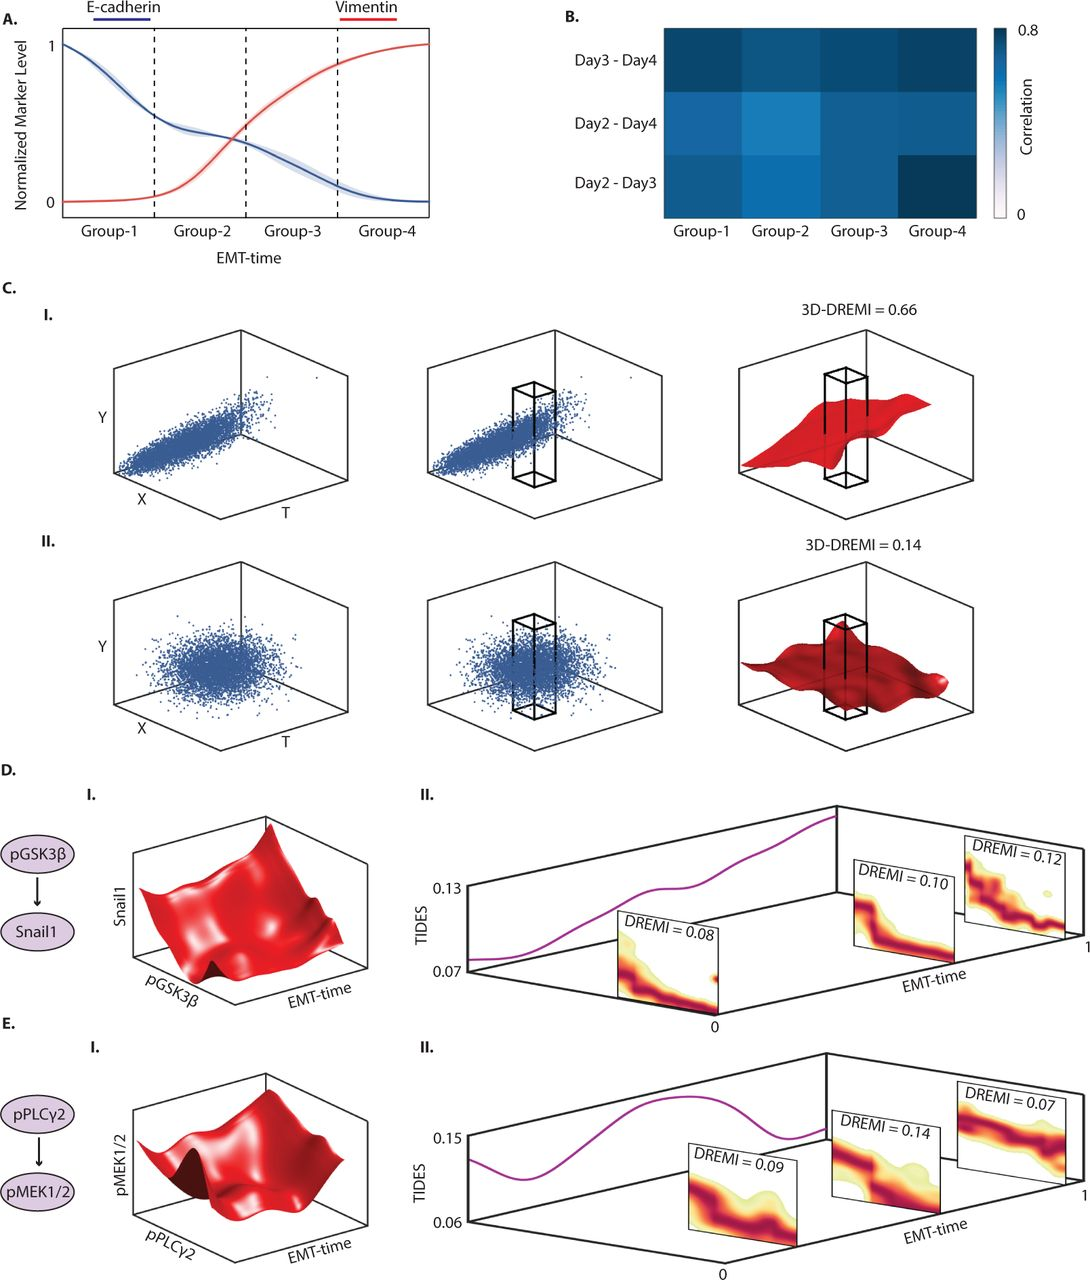 Learning Edge Rewiring in EMT From Single Cell Data | bioRxiv